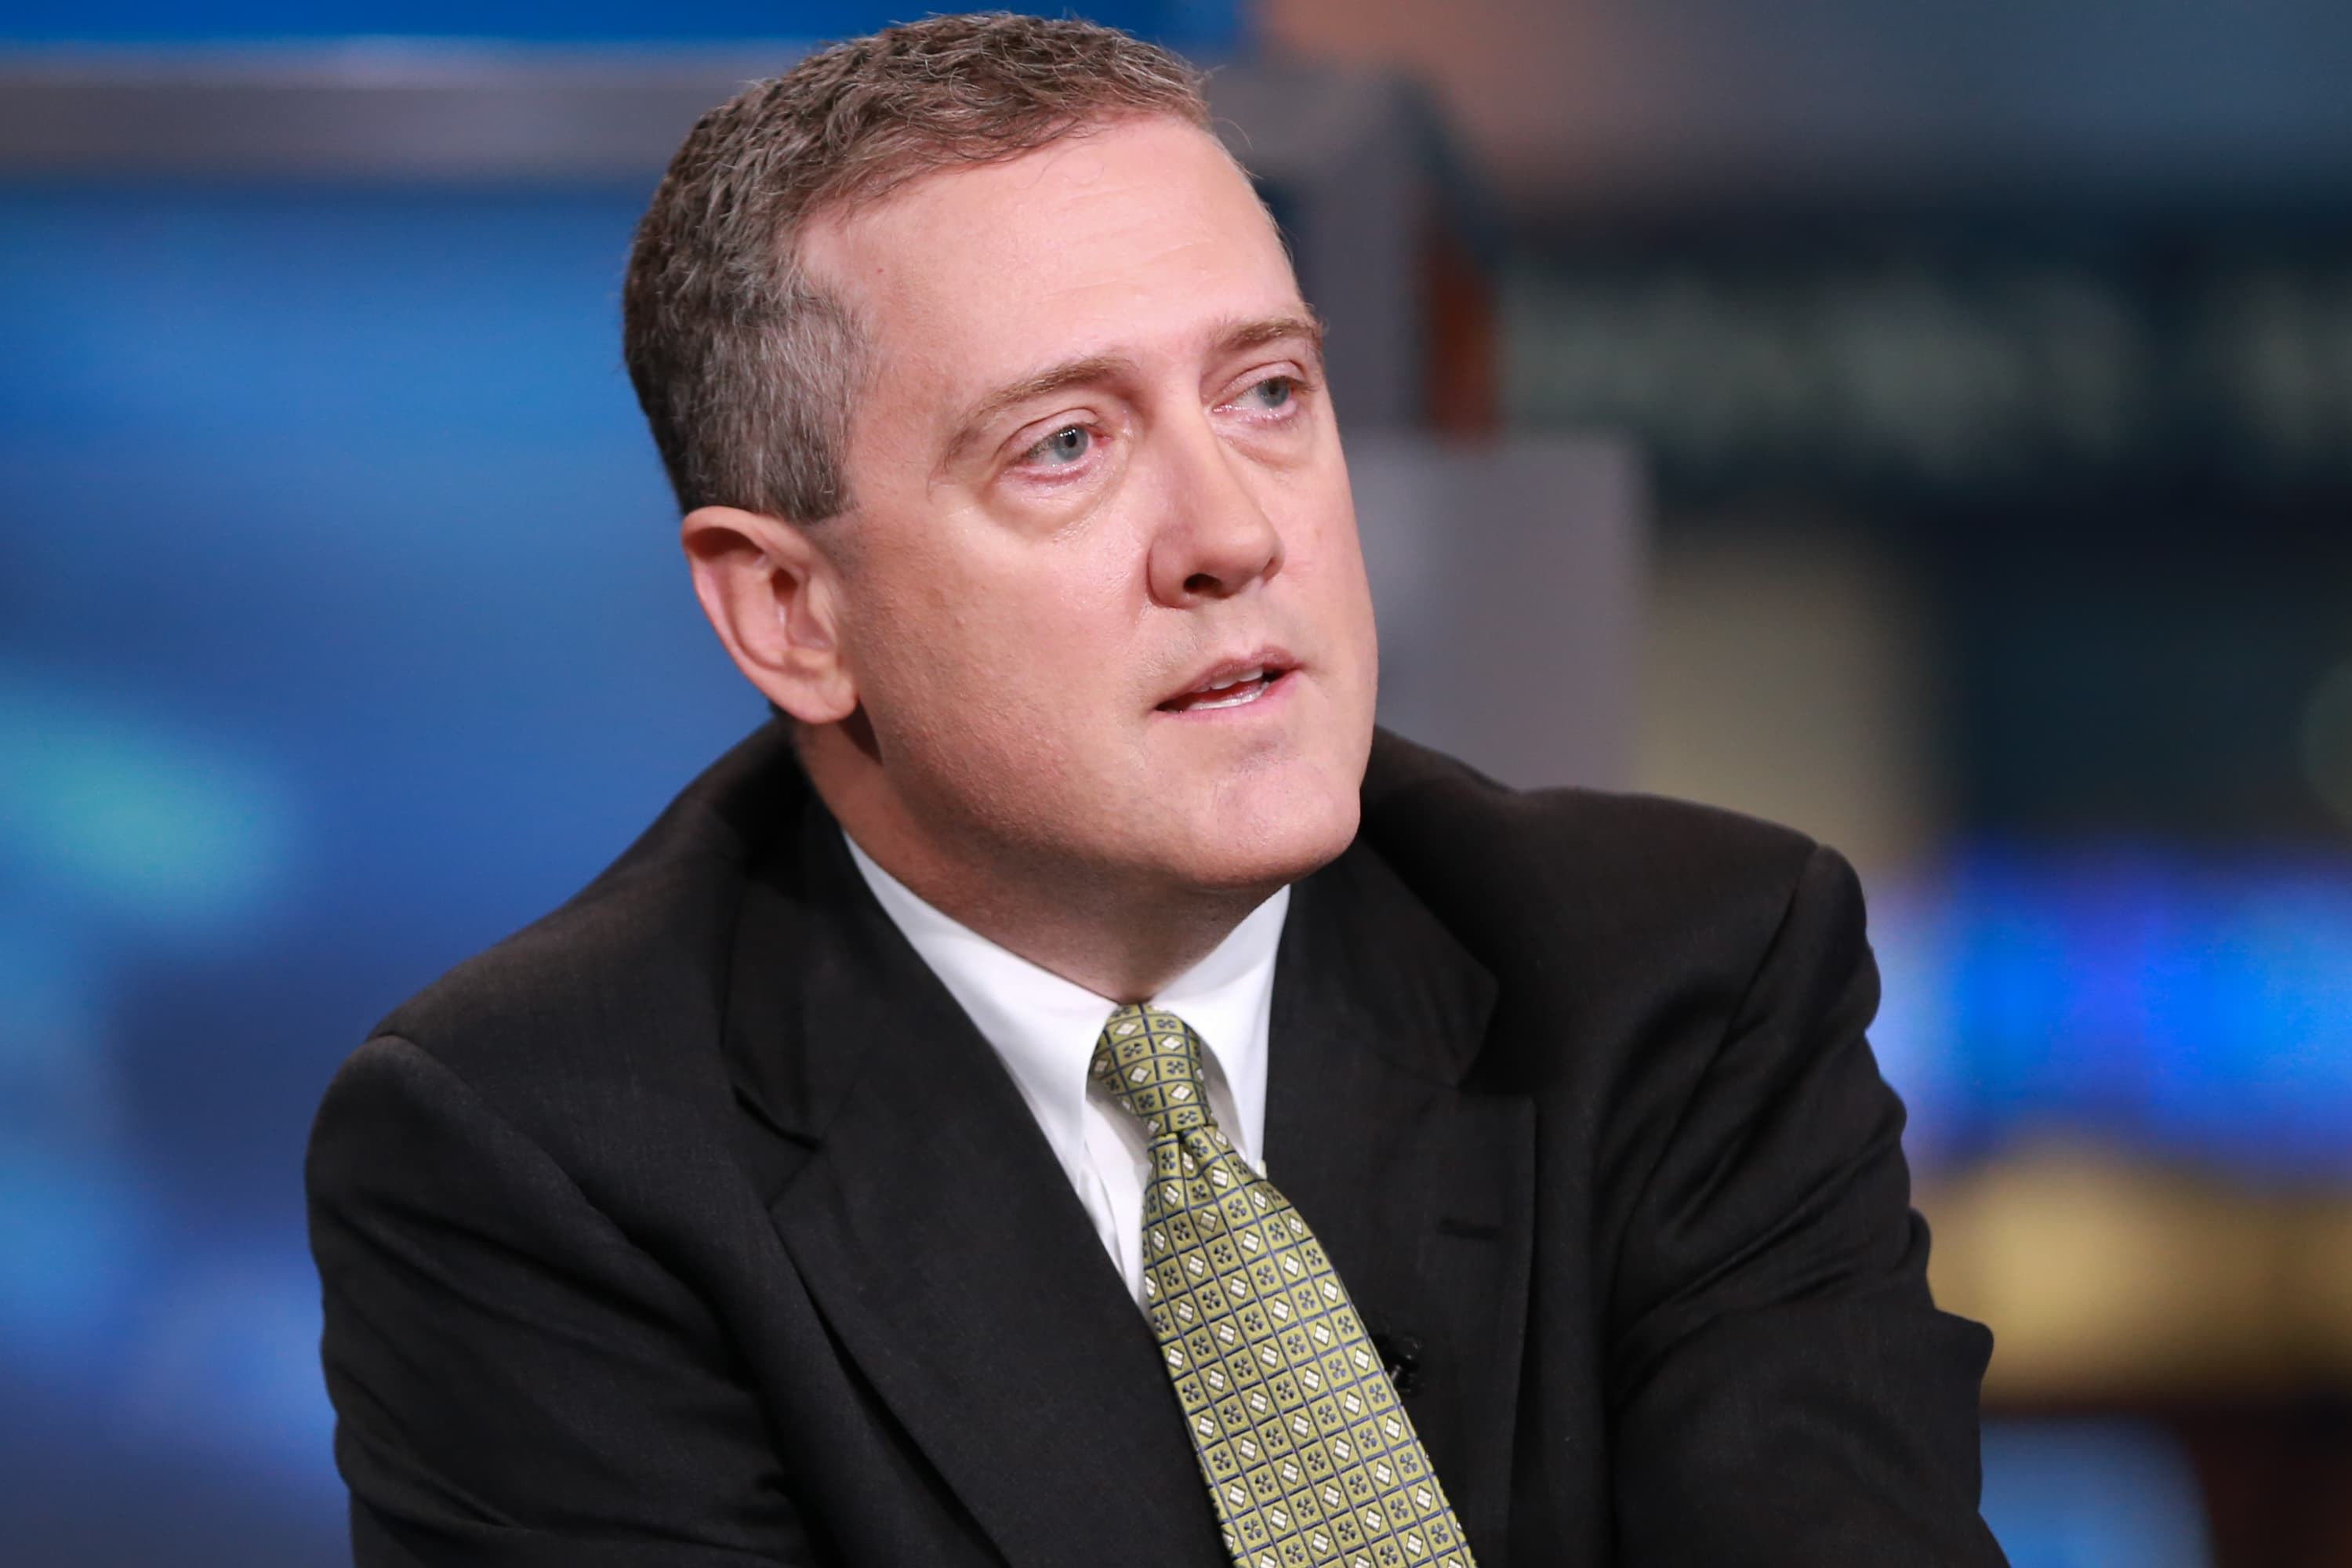 China would see 'blue skies ahead' if it accepts all US demands, Fed's Bullard says